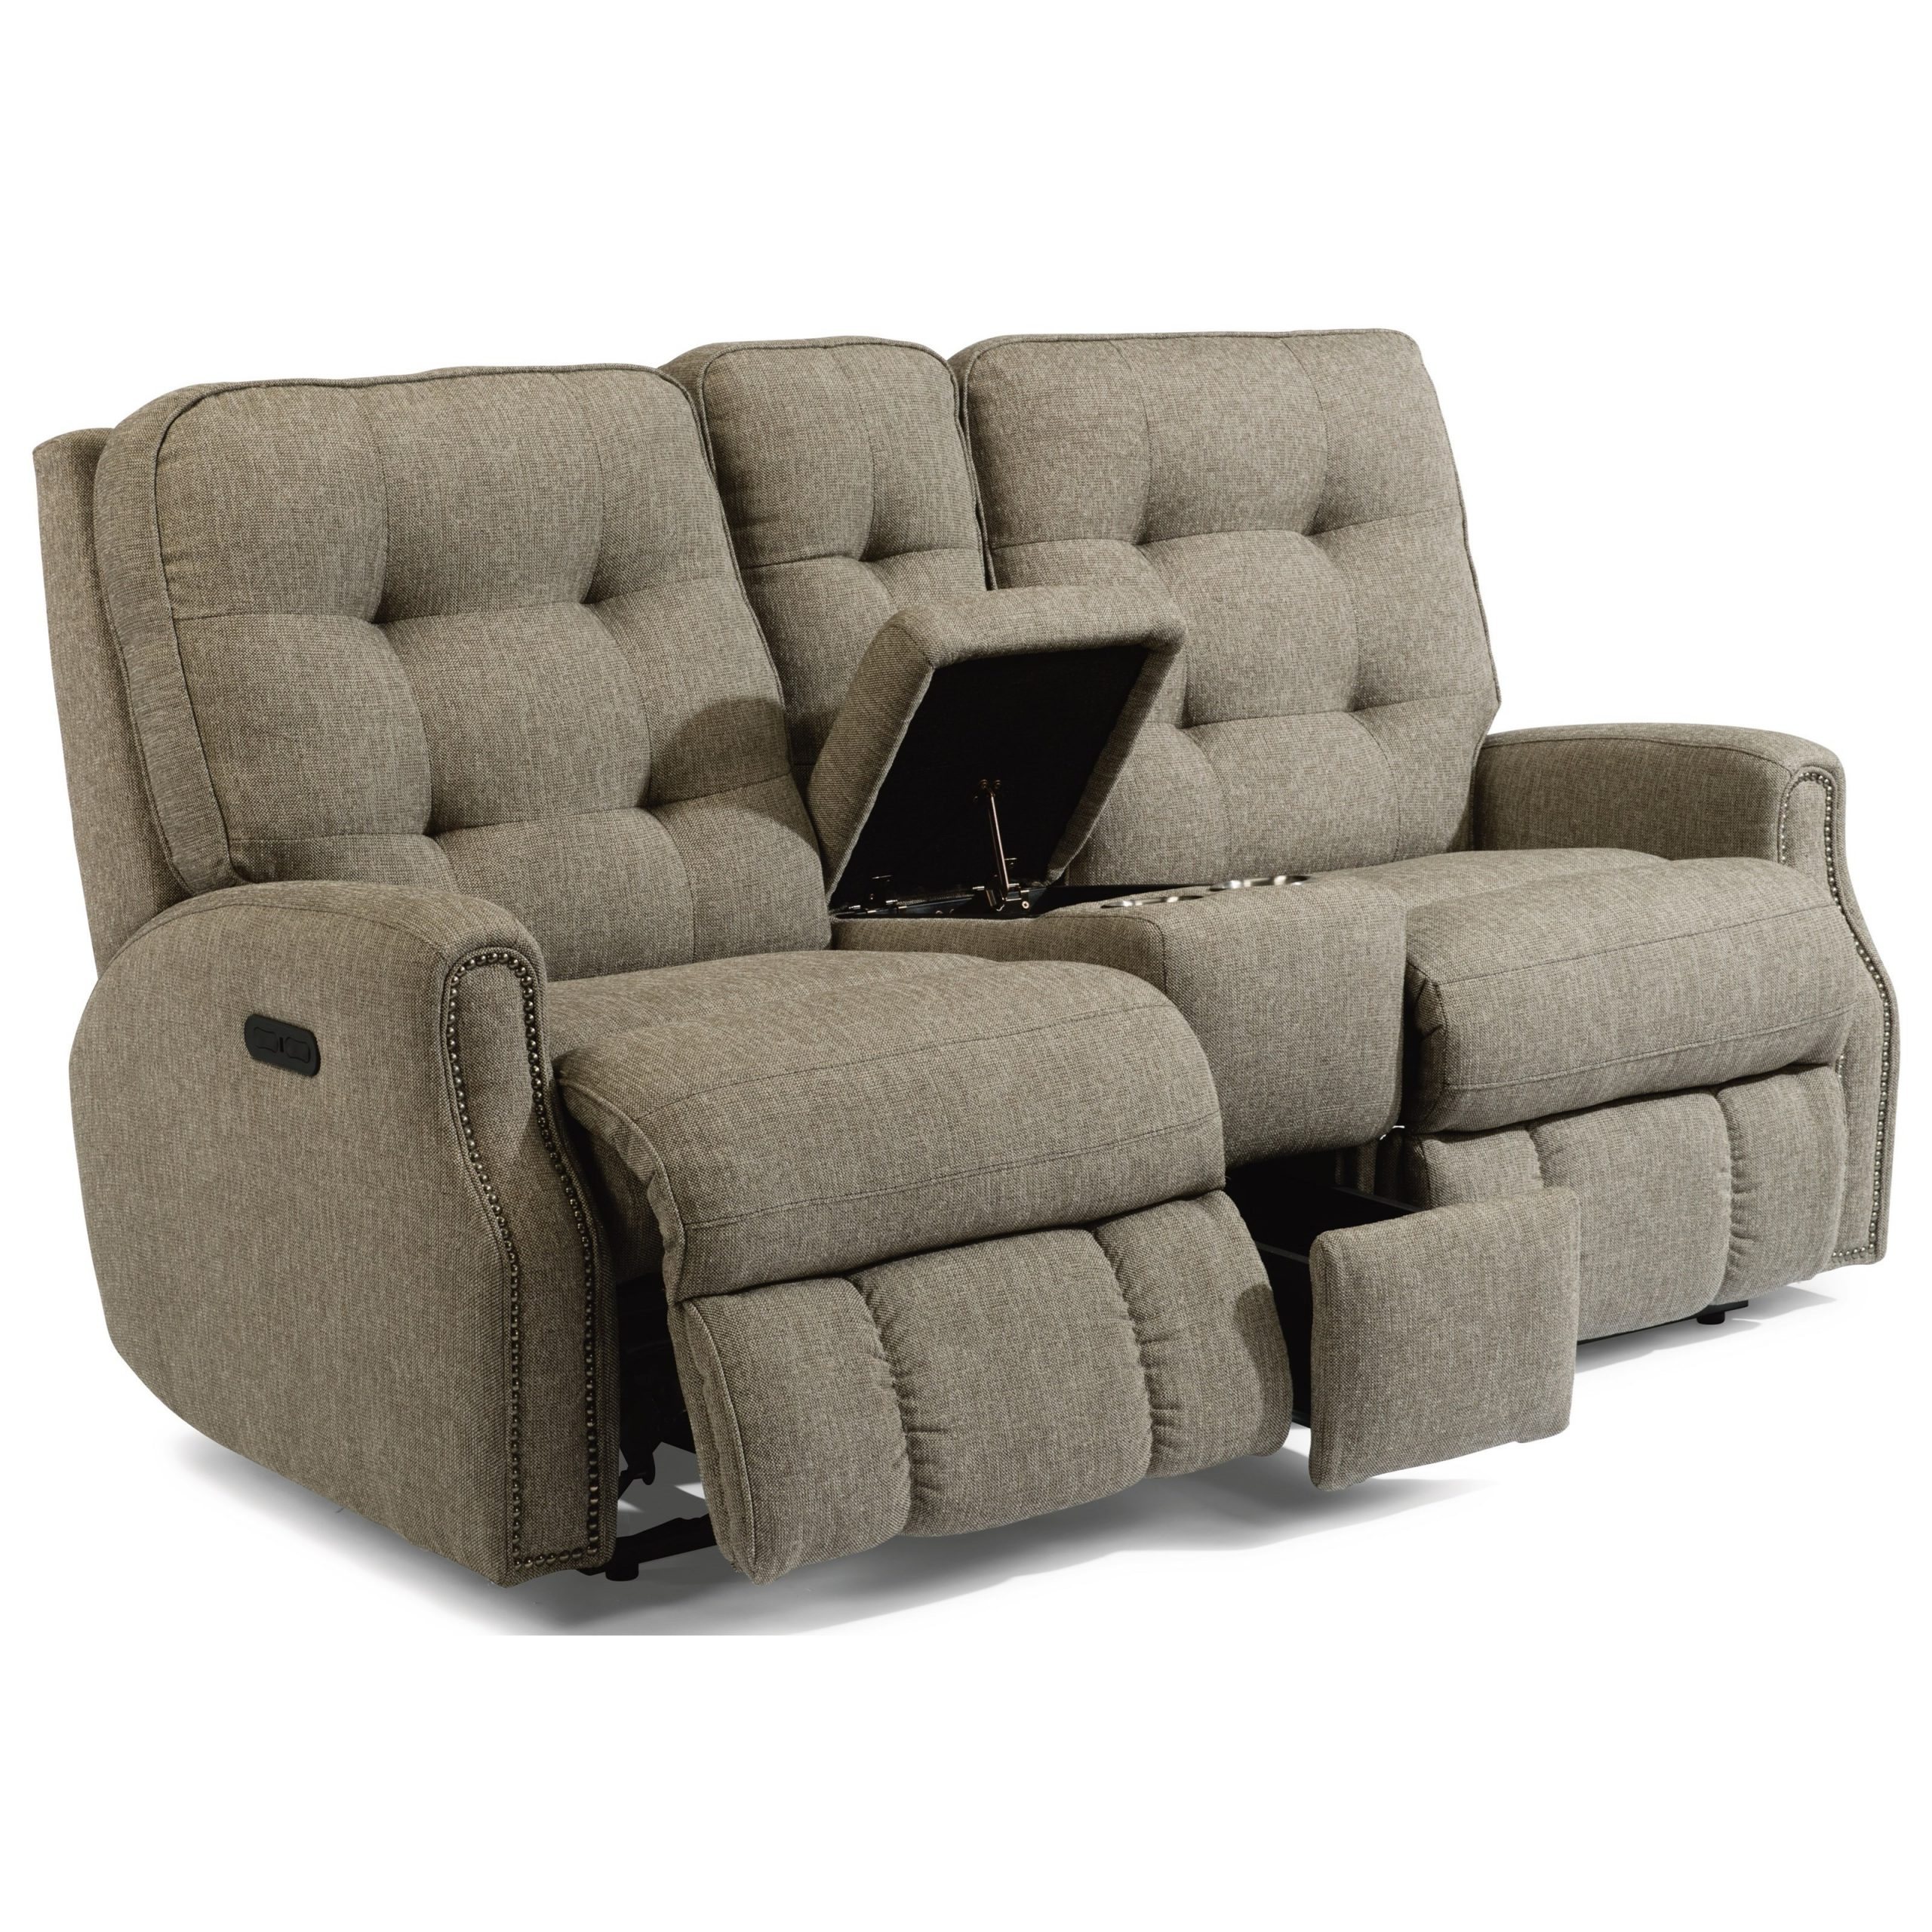 Flexsteel Devon Button Tufted Power Reclining Loveseat For Expedition Brown Power Reclining Sofas (View 10 of 15)